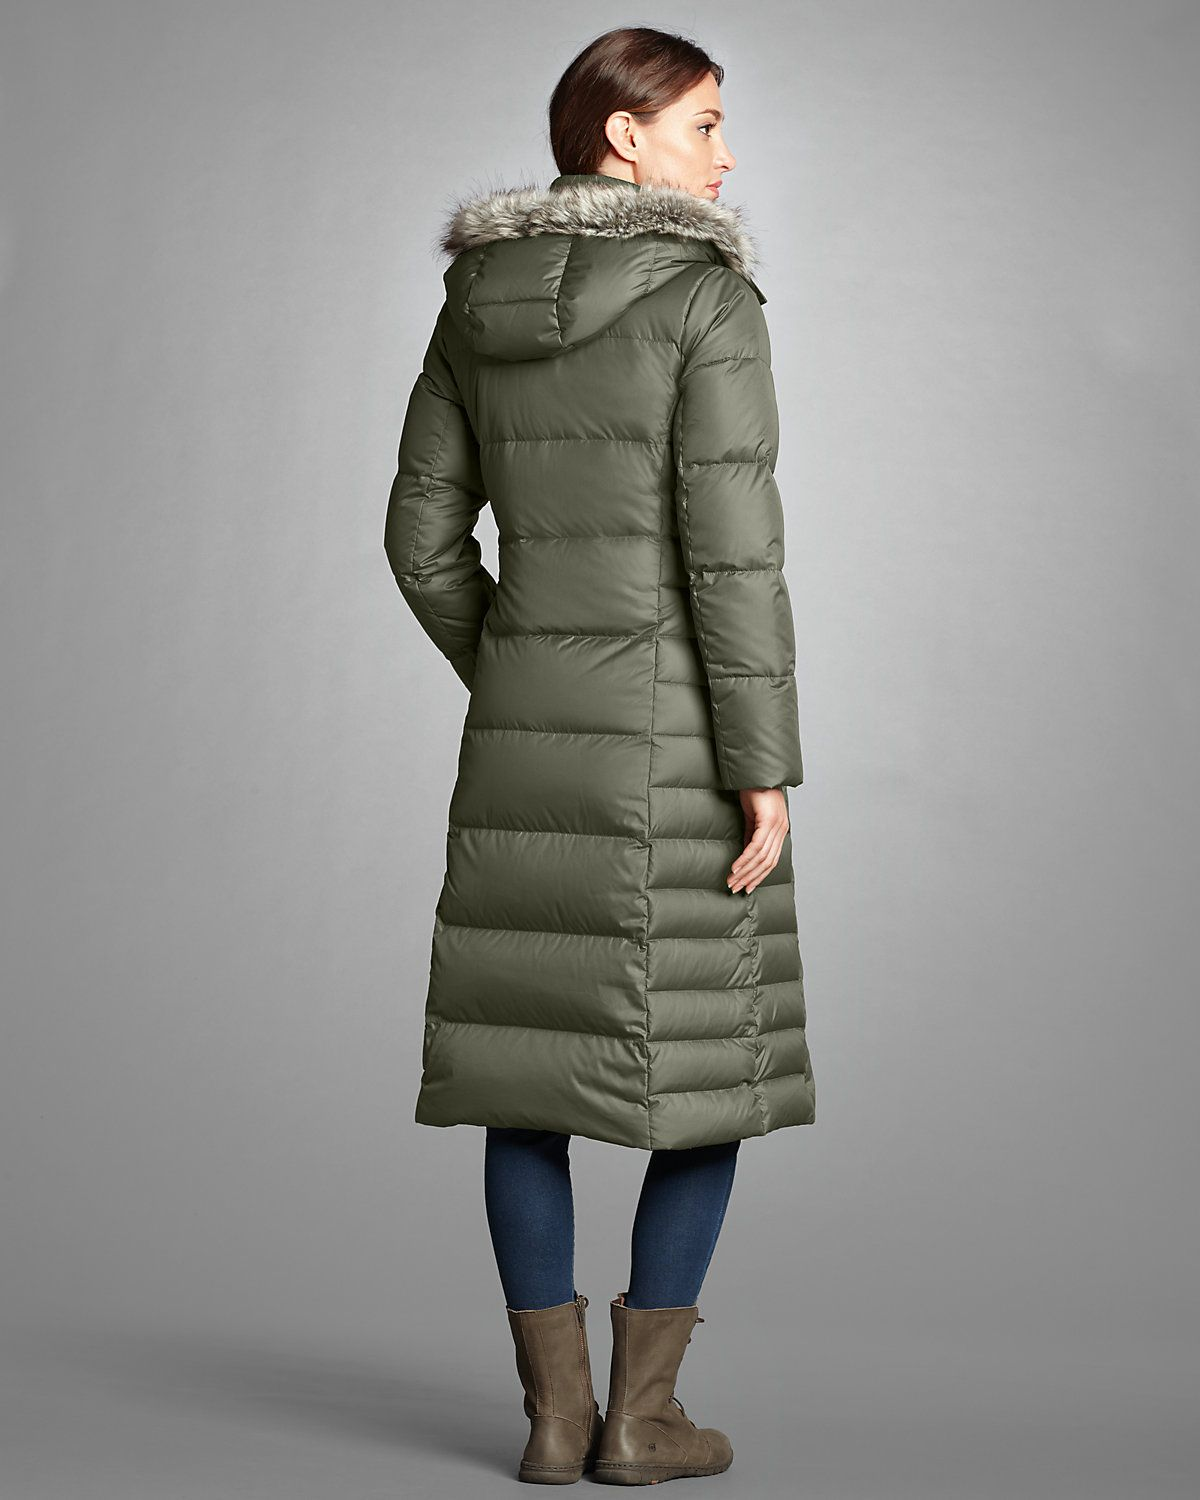 fbd2117a392 Women s Lodge Down Duffle Coat